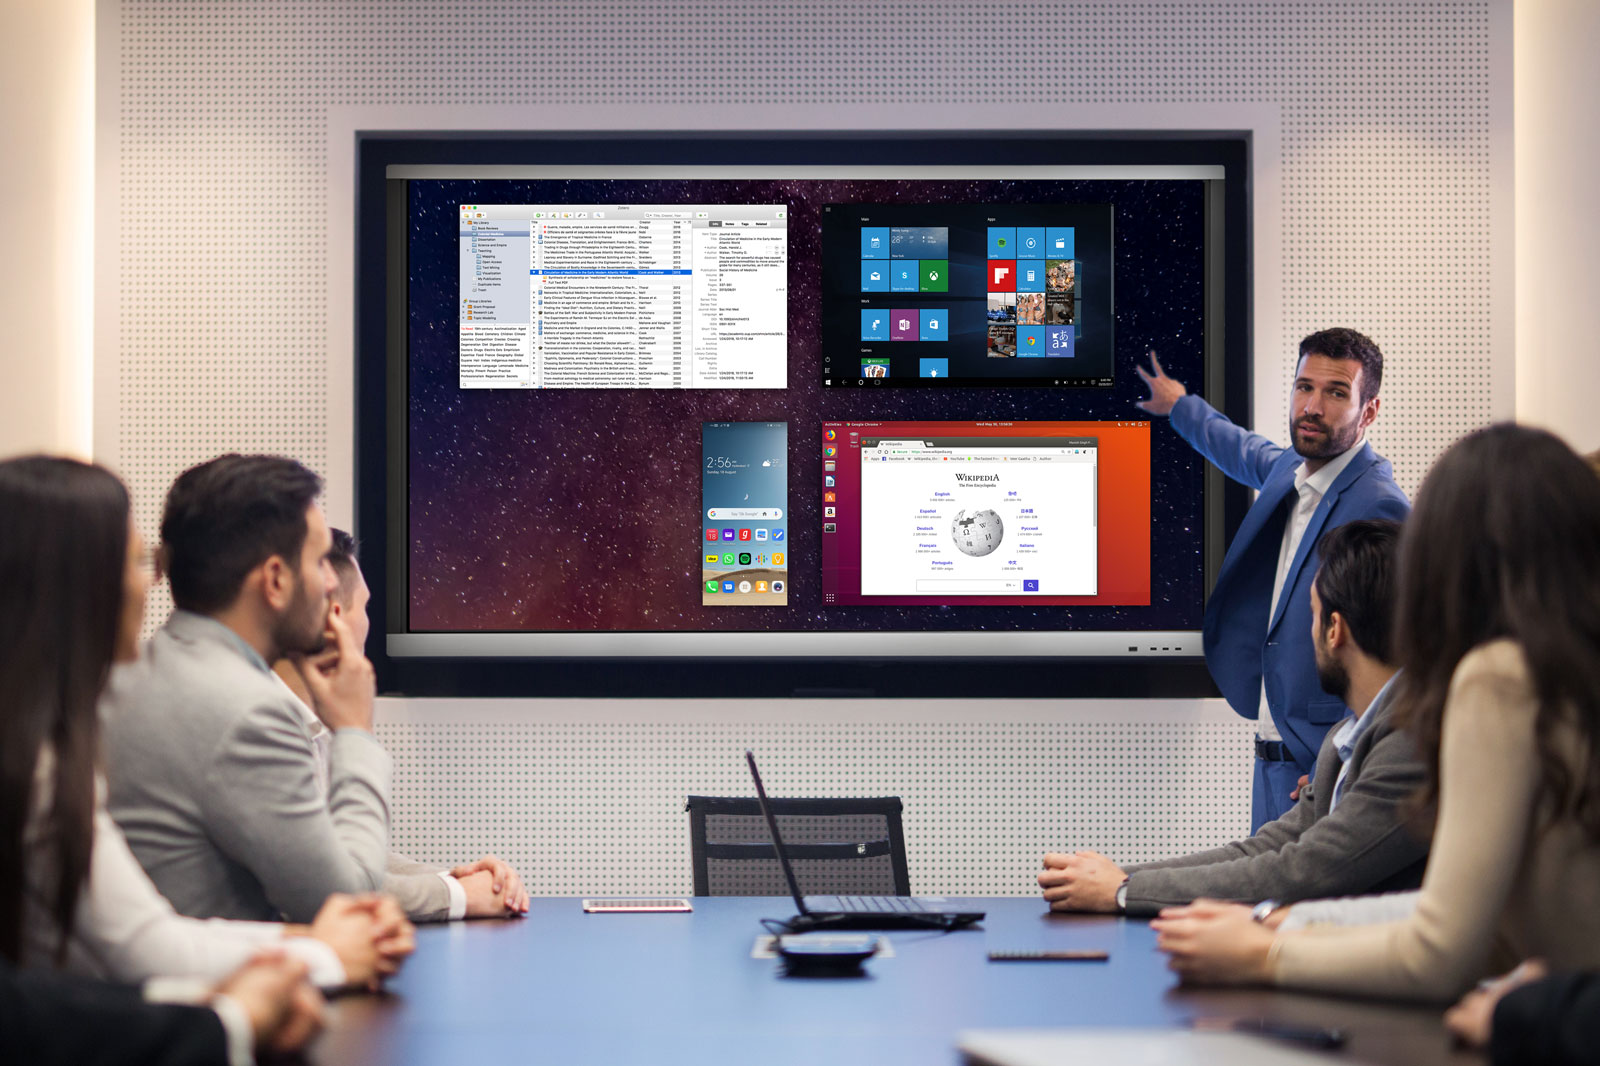 With csubtil pro range interactive touchscreens, participants can simultaneously display content